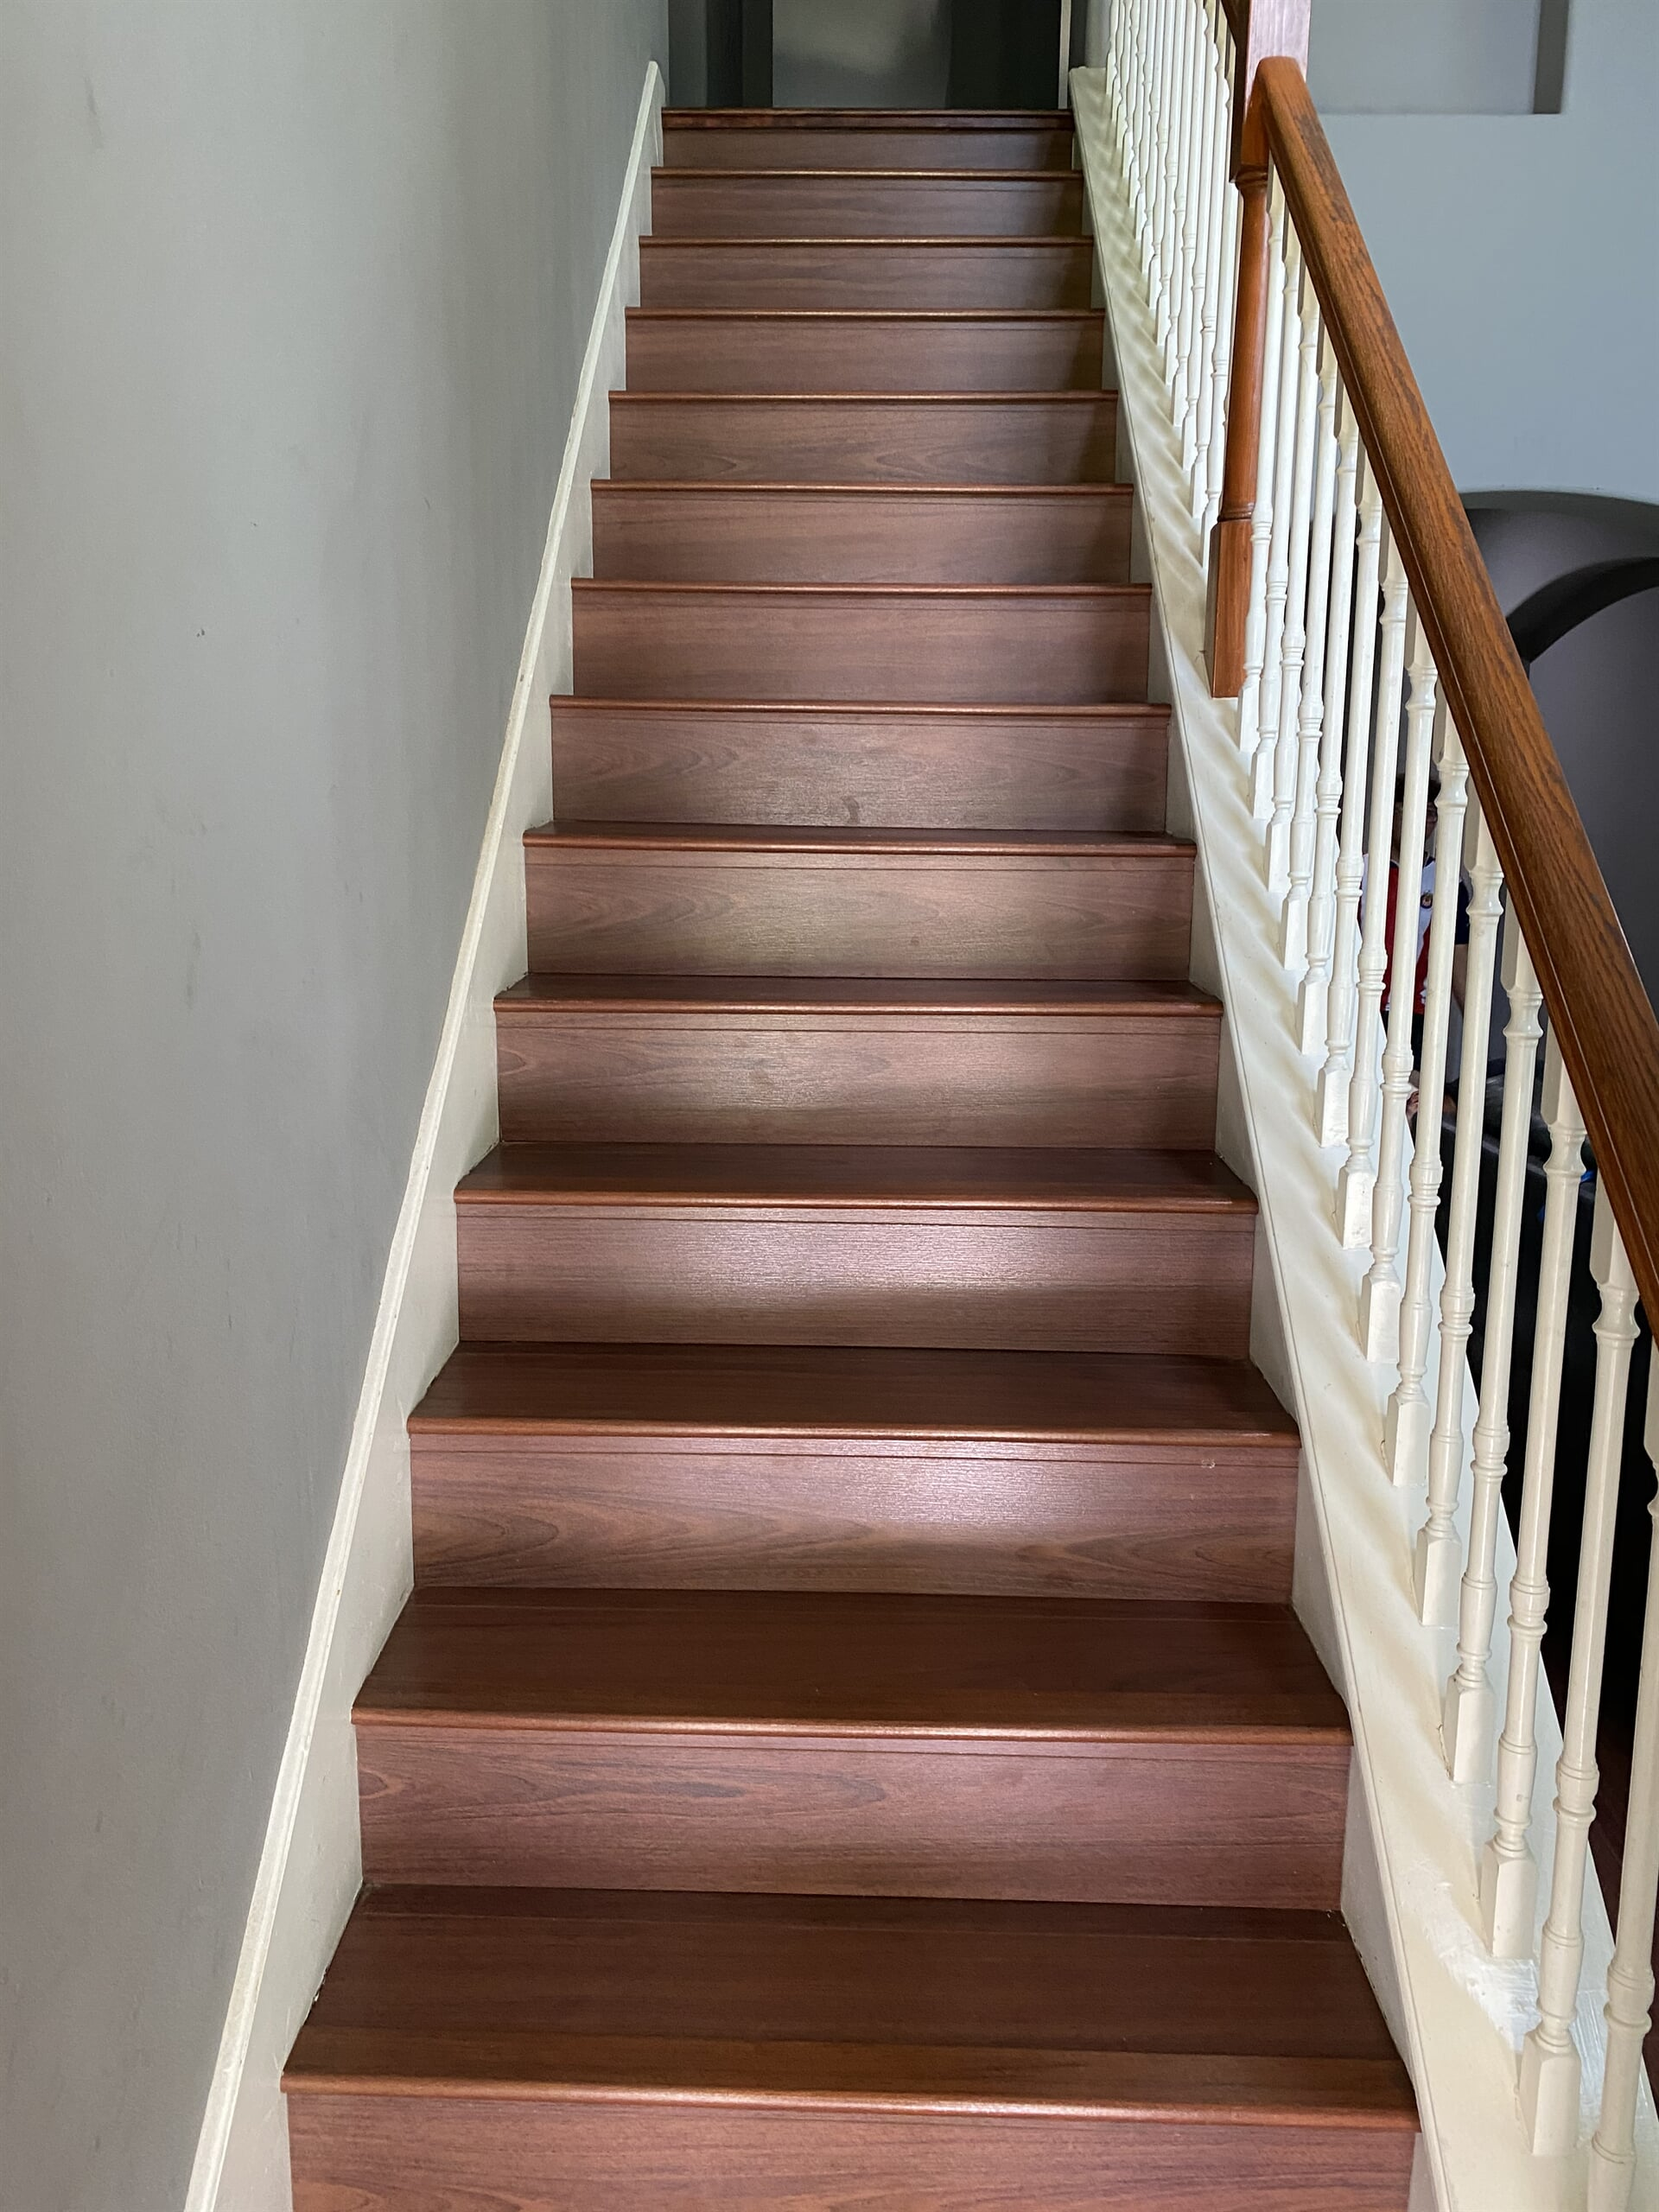 Hardwood stairs from Houston Floor Installation Services in Spring, TX